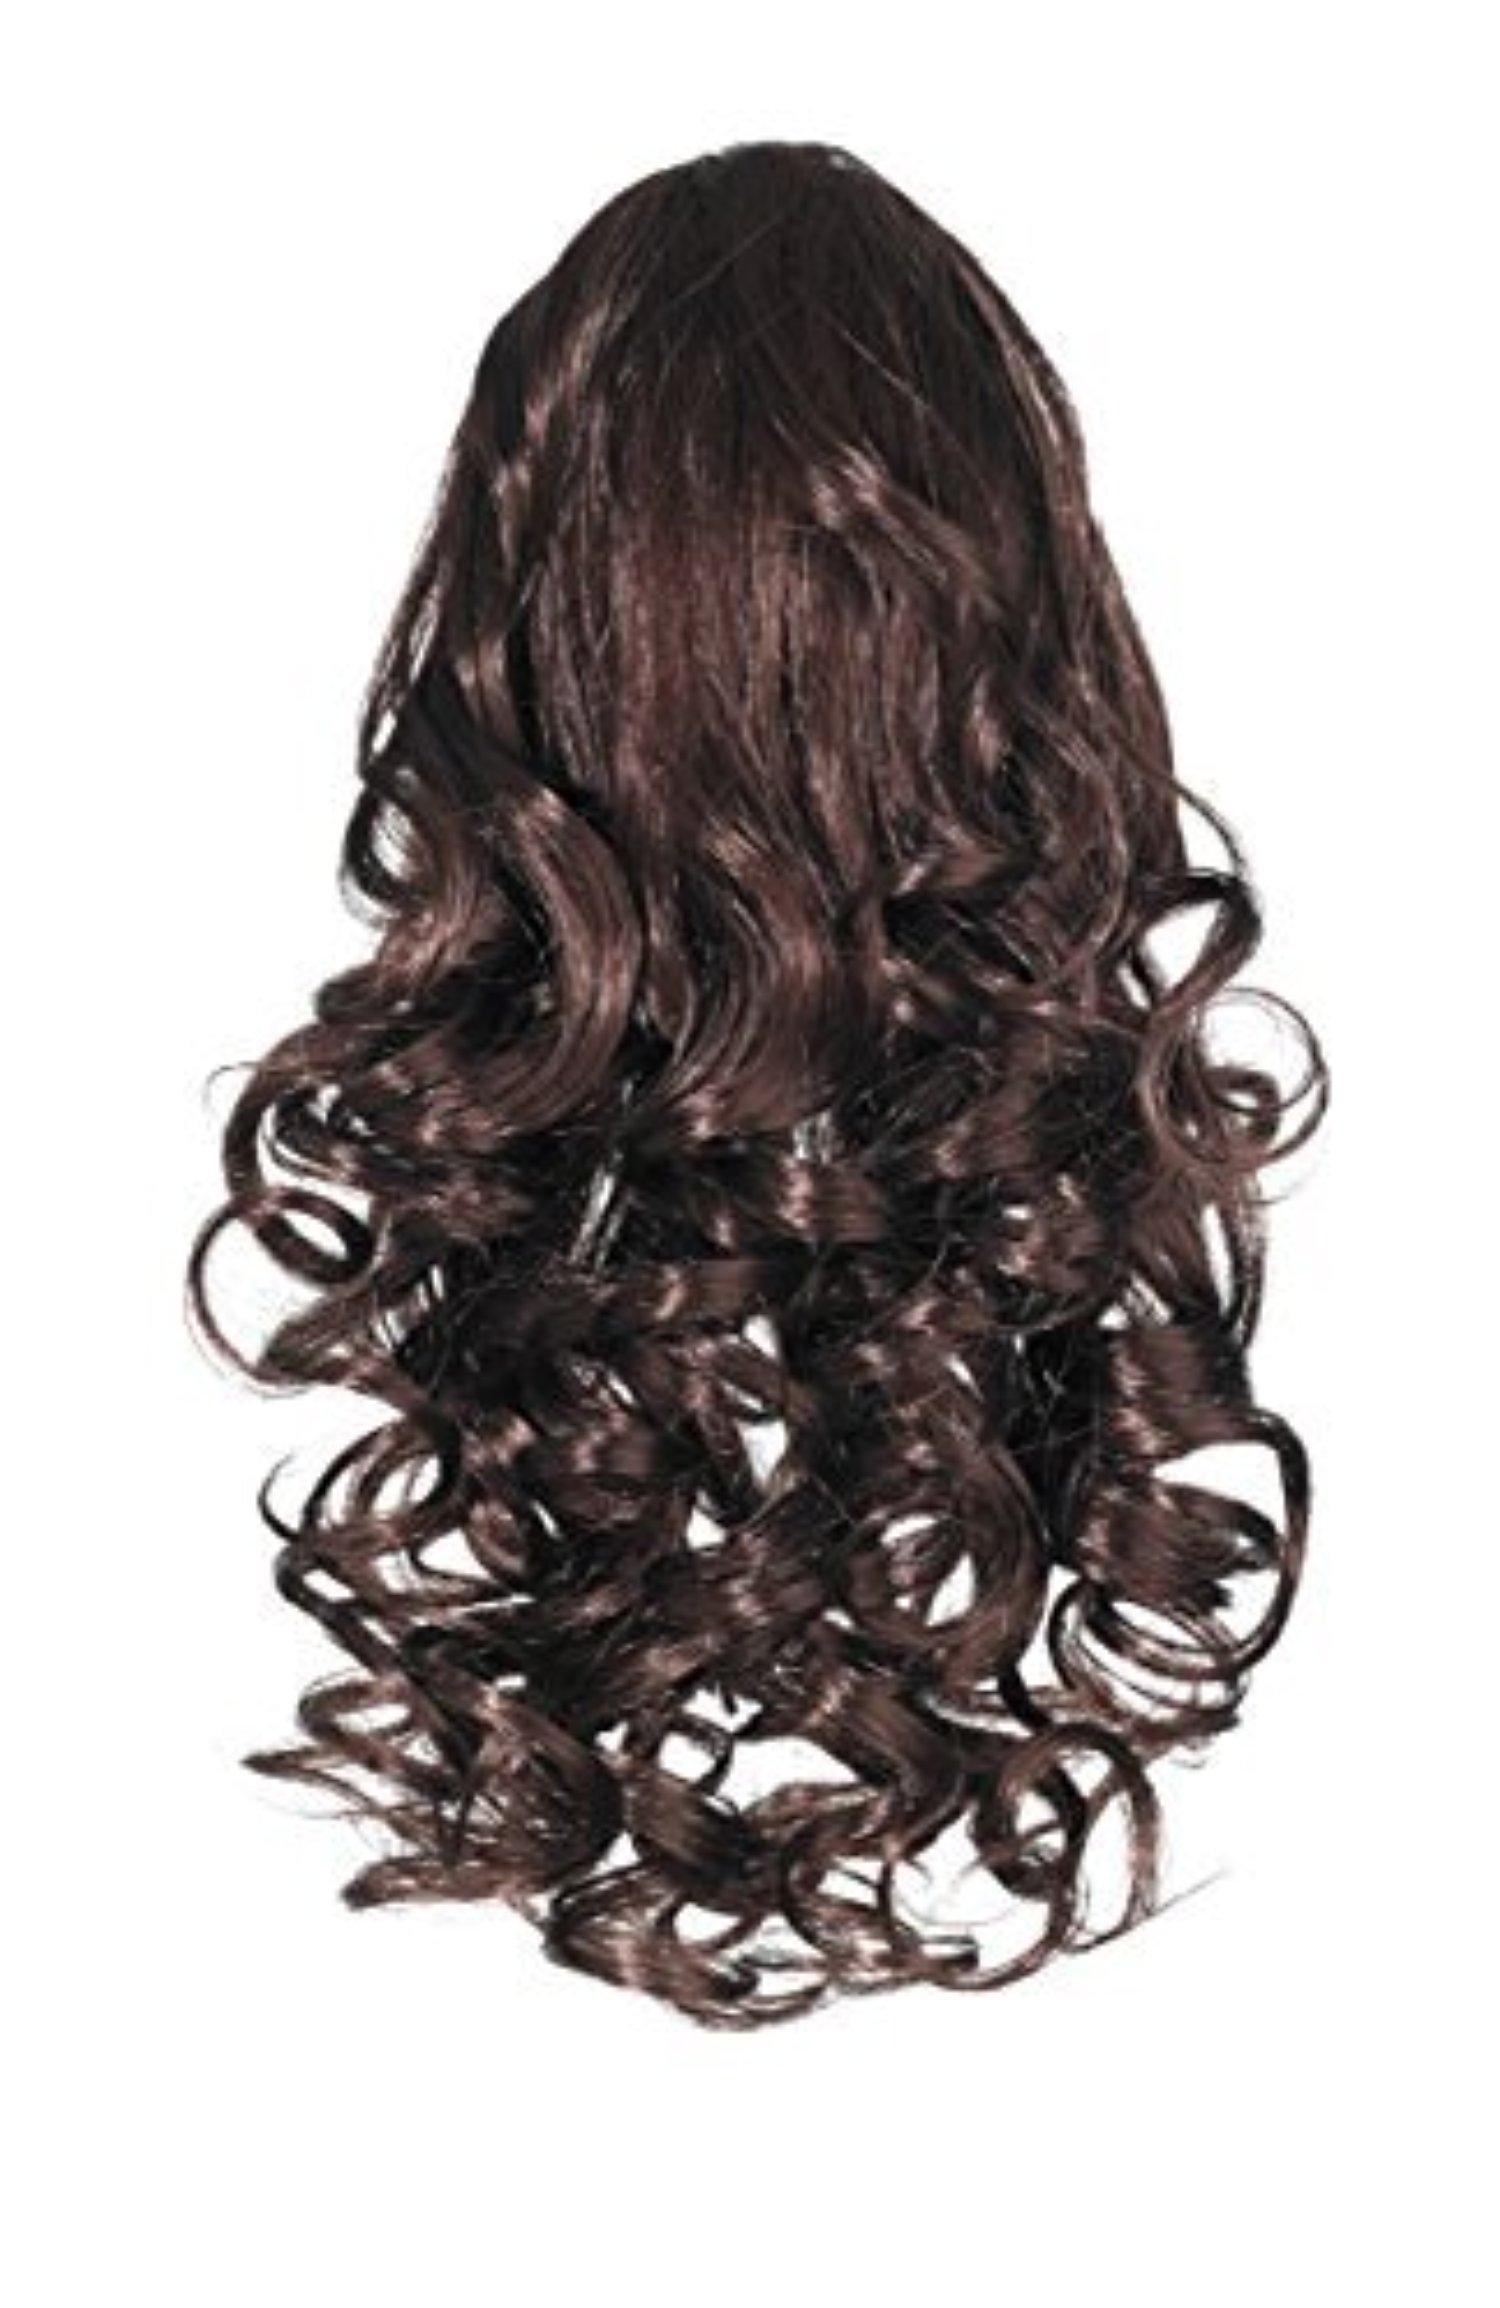 Love Hair Extensions Curly Crocodile Clip Synthetic Hair Ponytail Colour 2 Dark Brown 12 -Inch by Love Hair Extensions